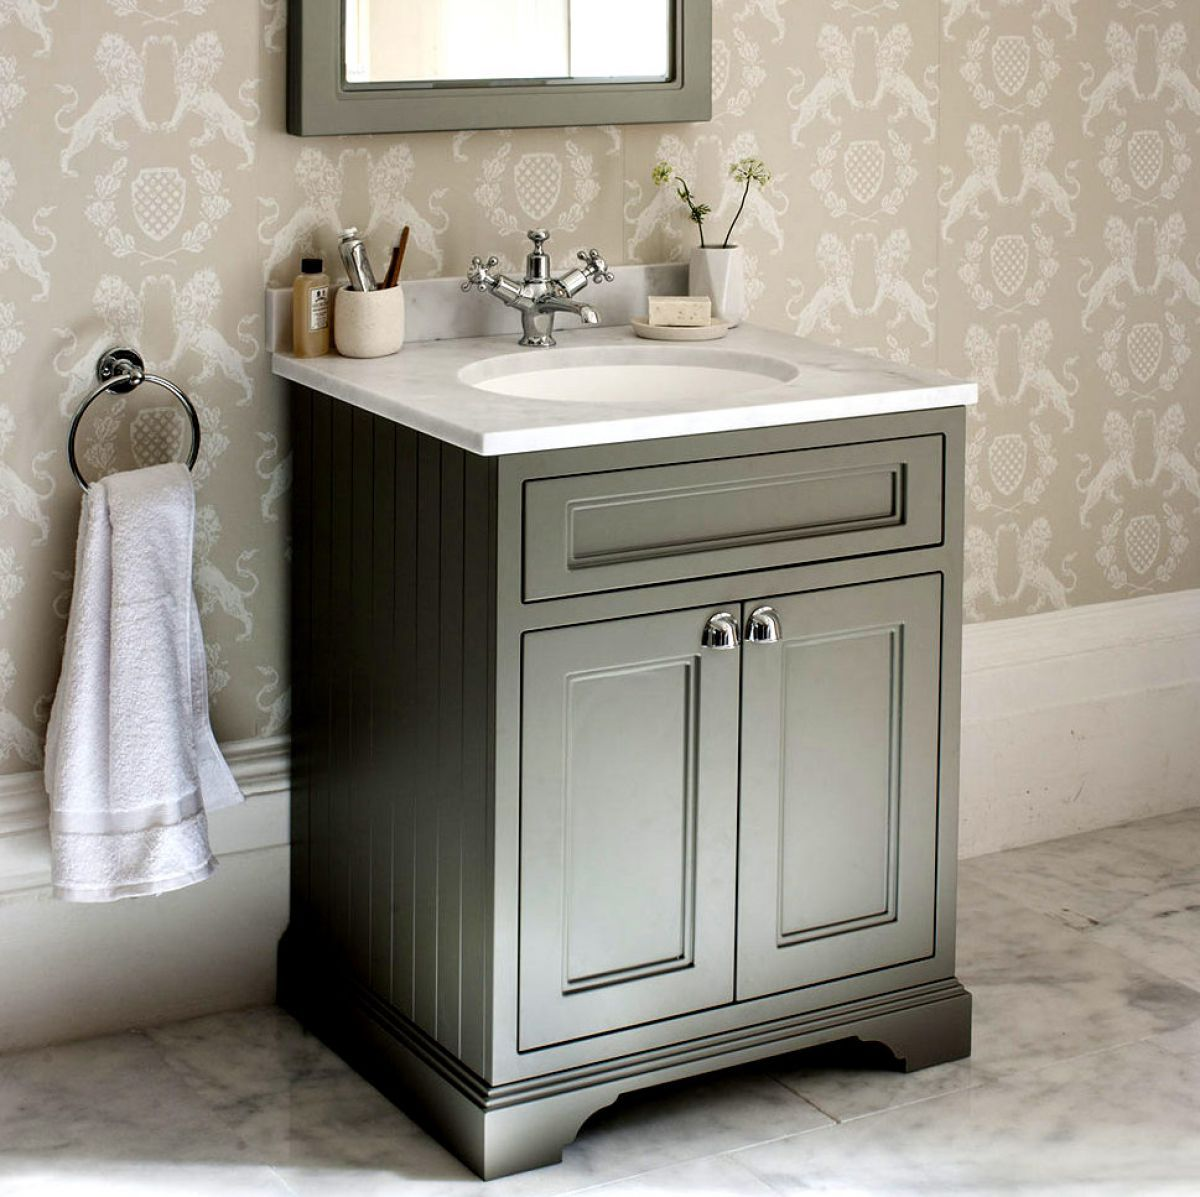 Burlington 65 Floorstanding Vanity Unit with Two Doors ...